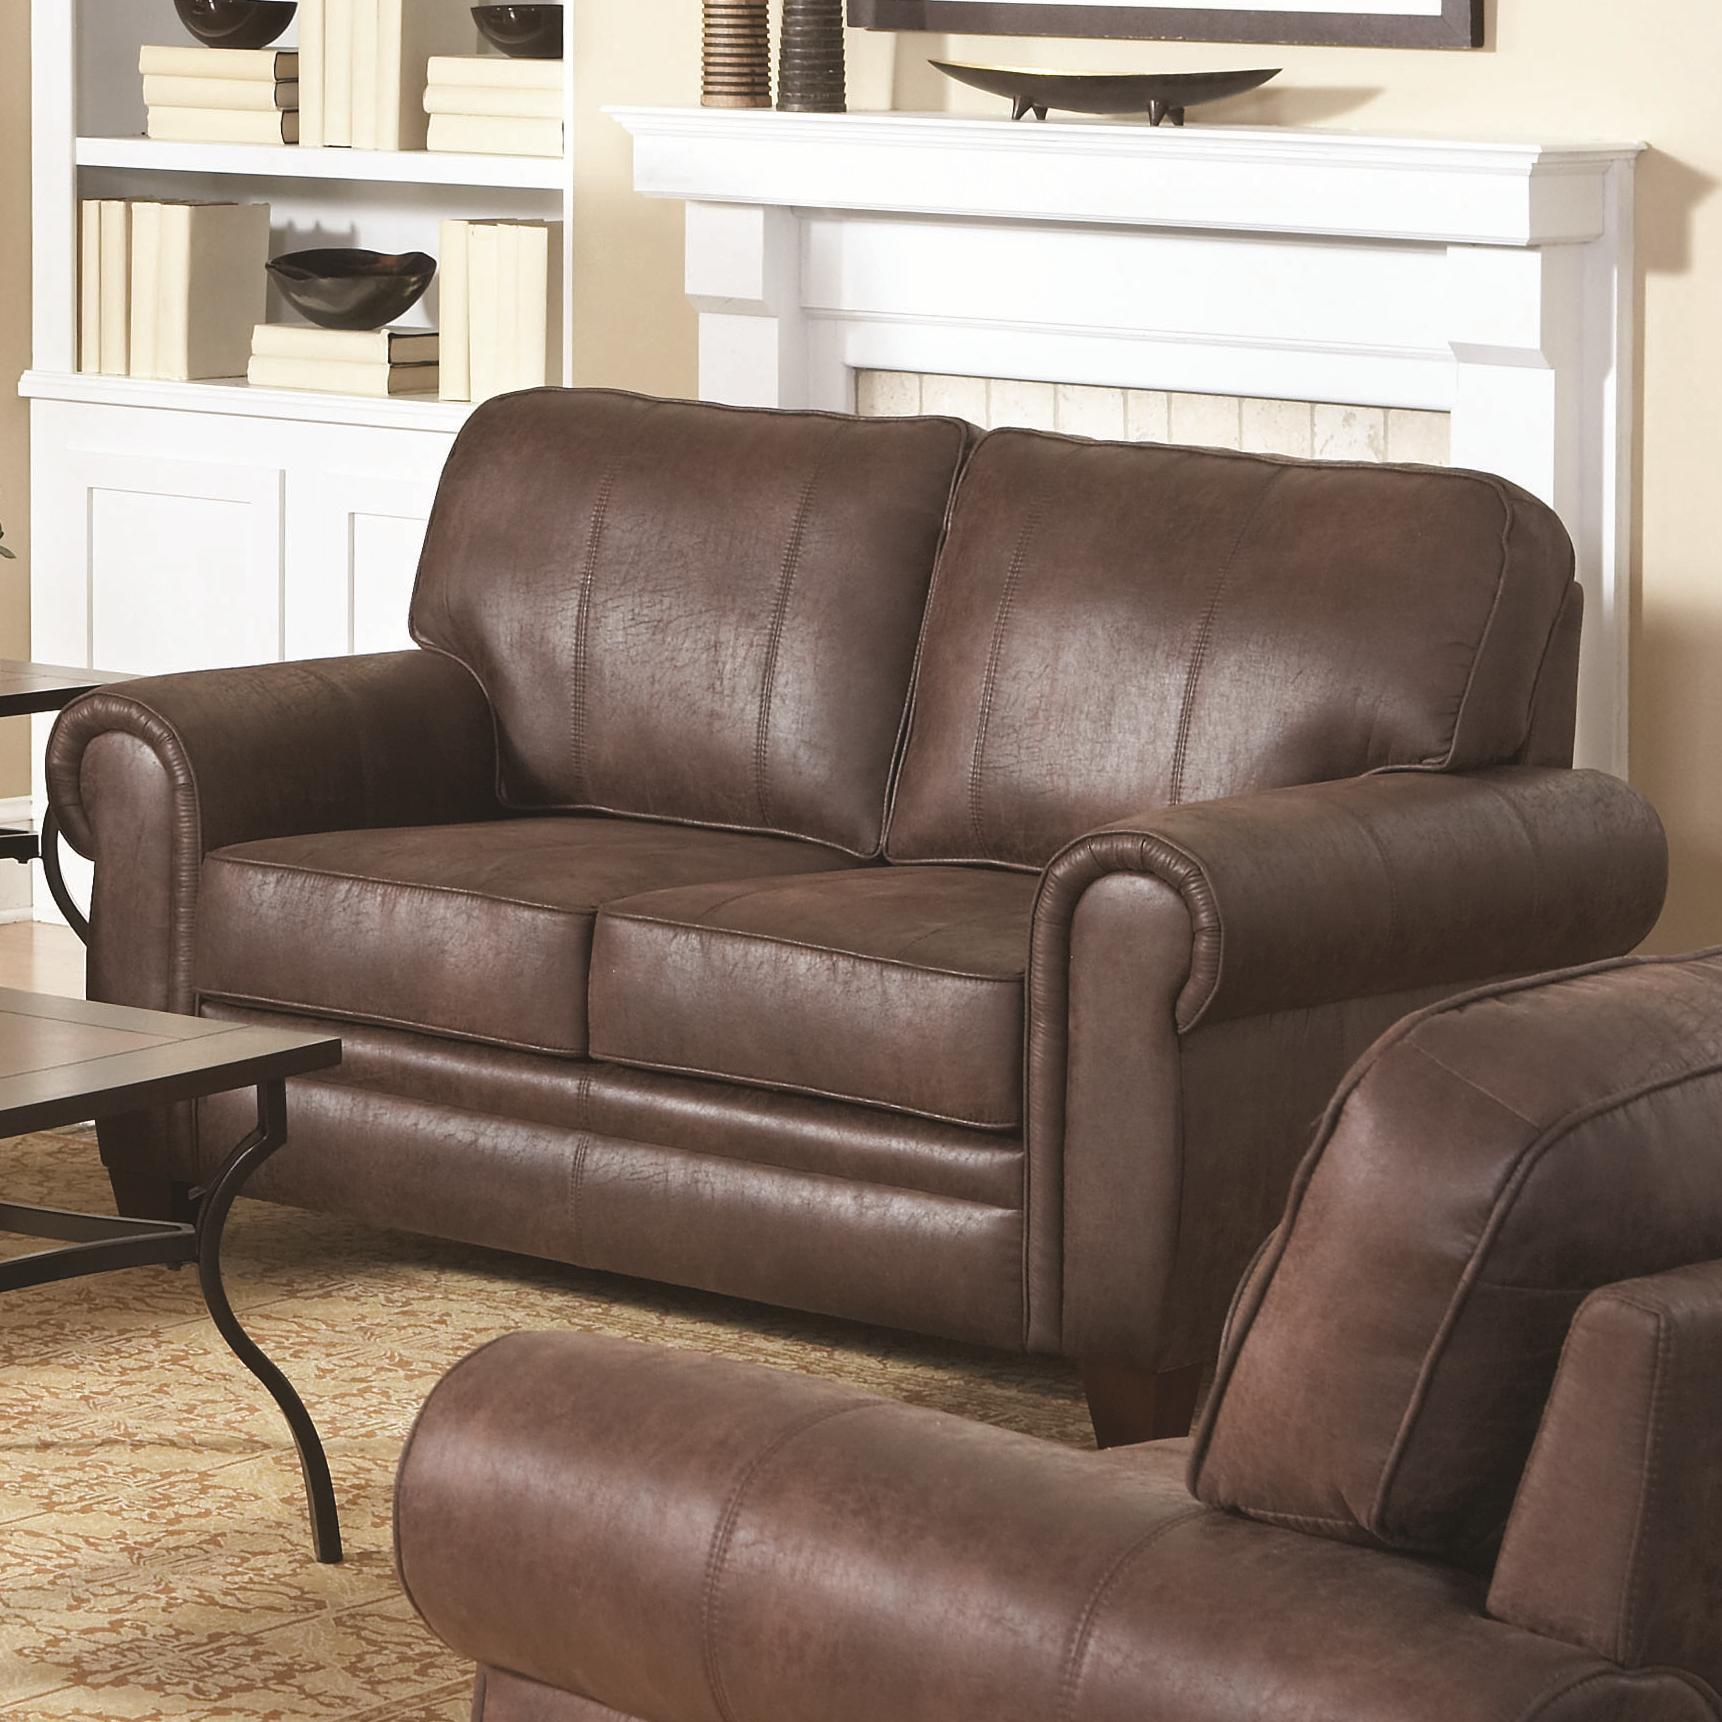 sofa deals nj lounge bed suppliers coaster bentley rustic styled loveseat with microfiber